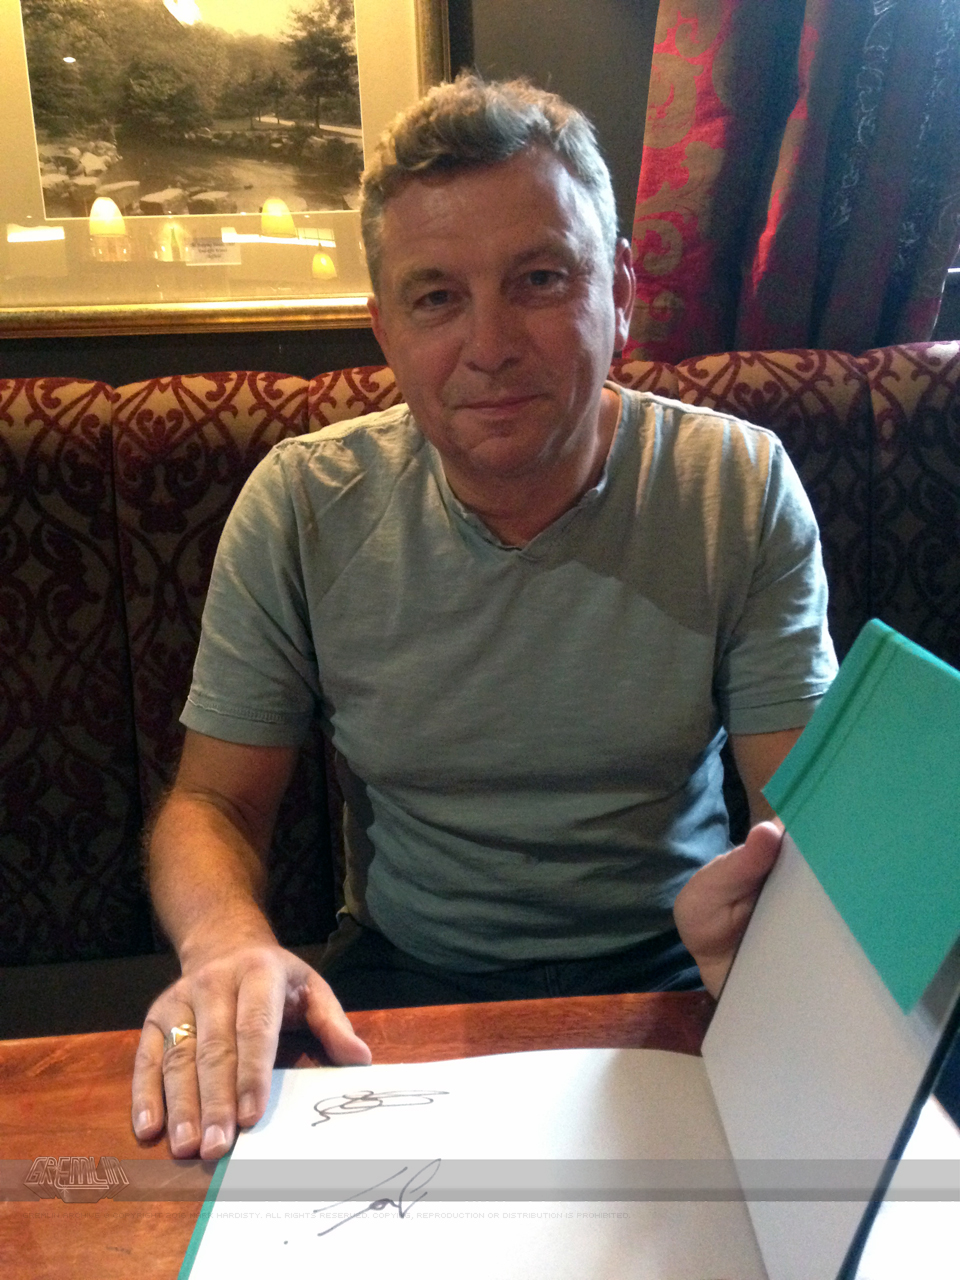 James North-Hearn – A Gremlin in the Works